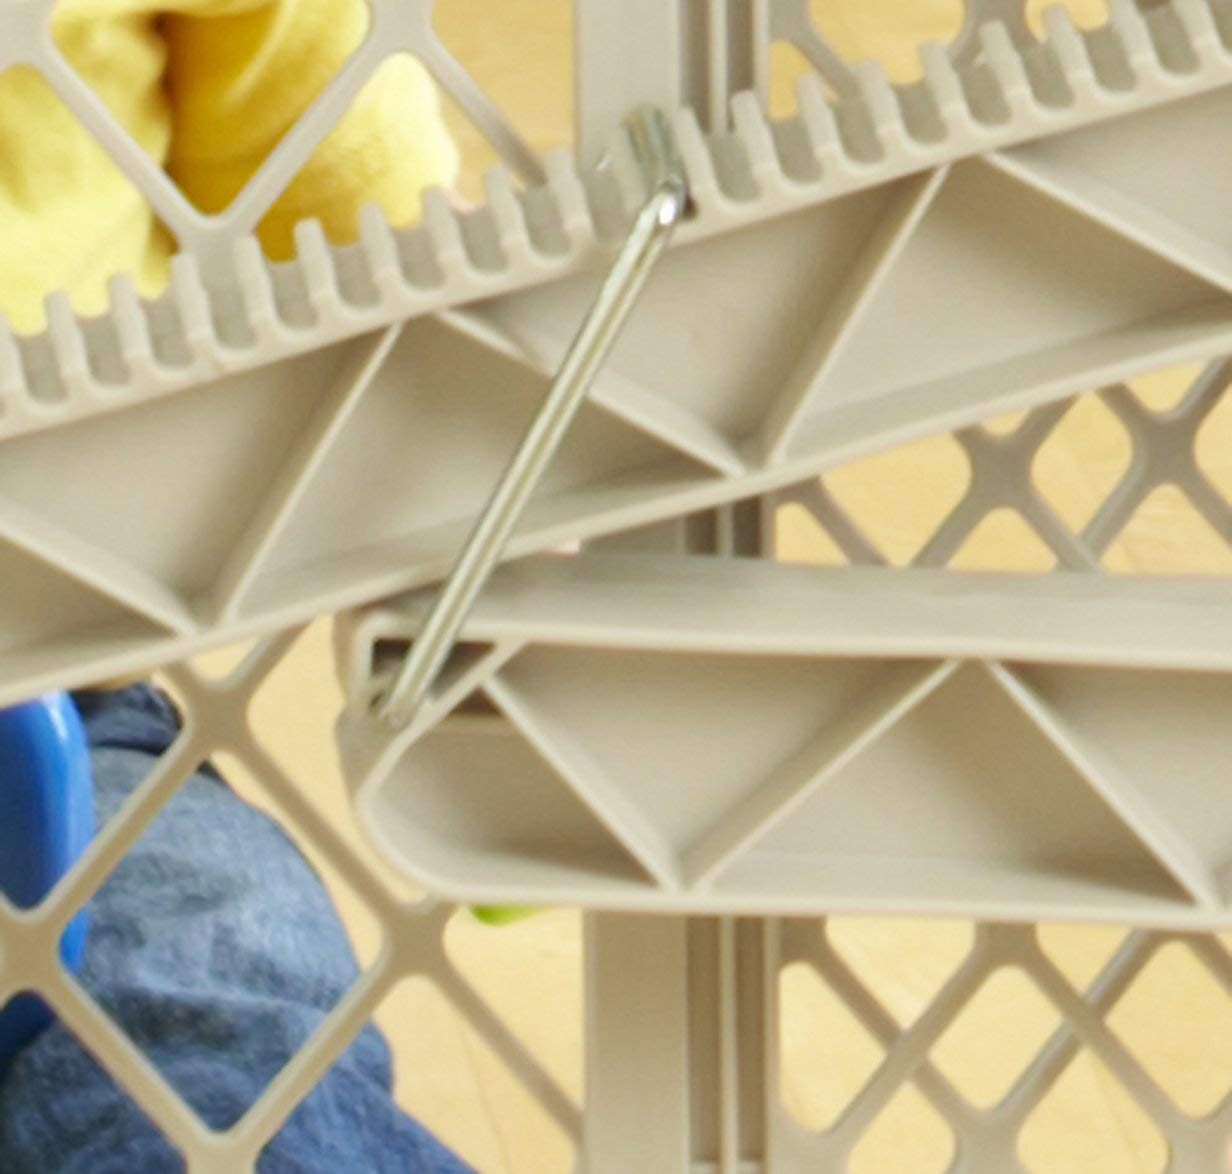 North States Top Notch Plastic Pressure Mounted Baby Pet Safety Gate (3 Pack) by North States (Image #5)